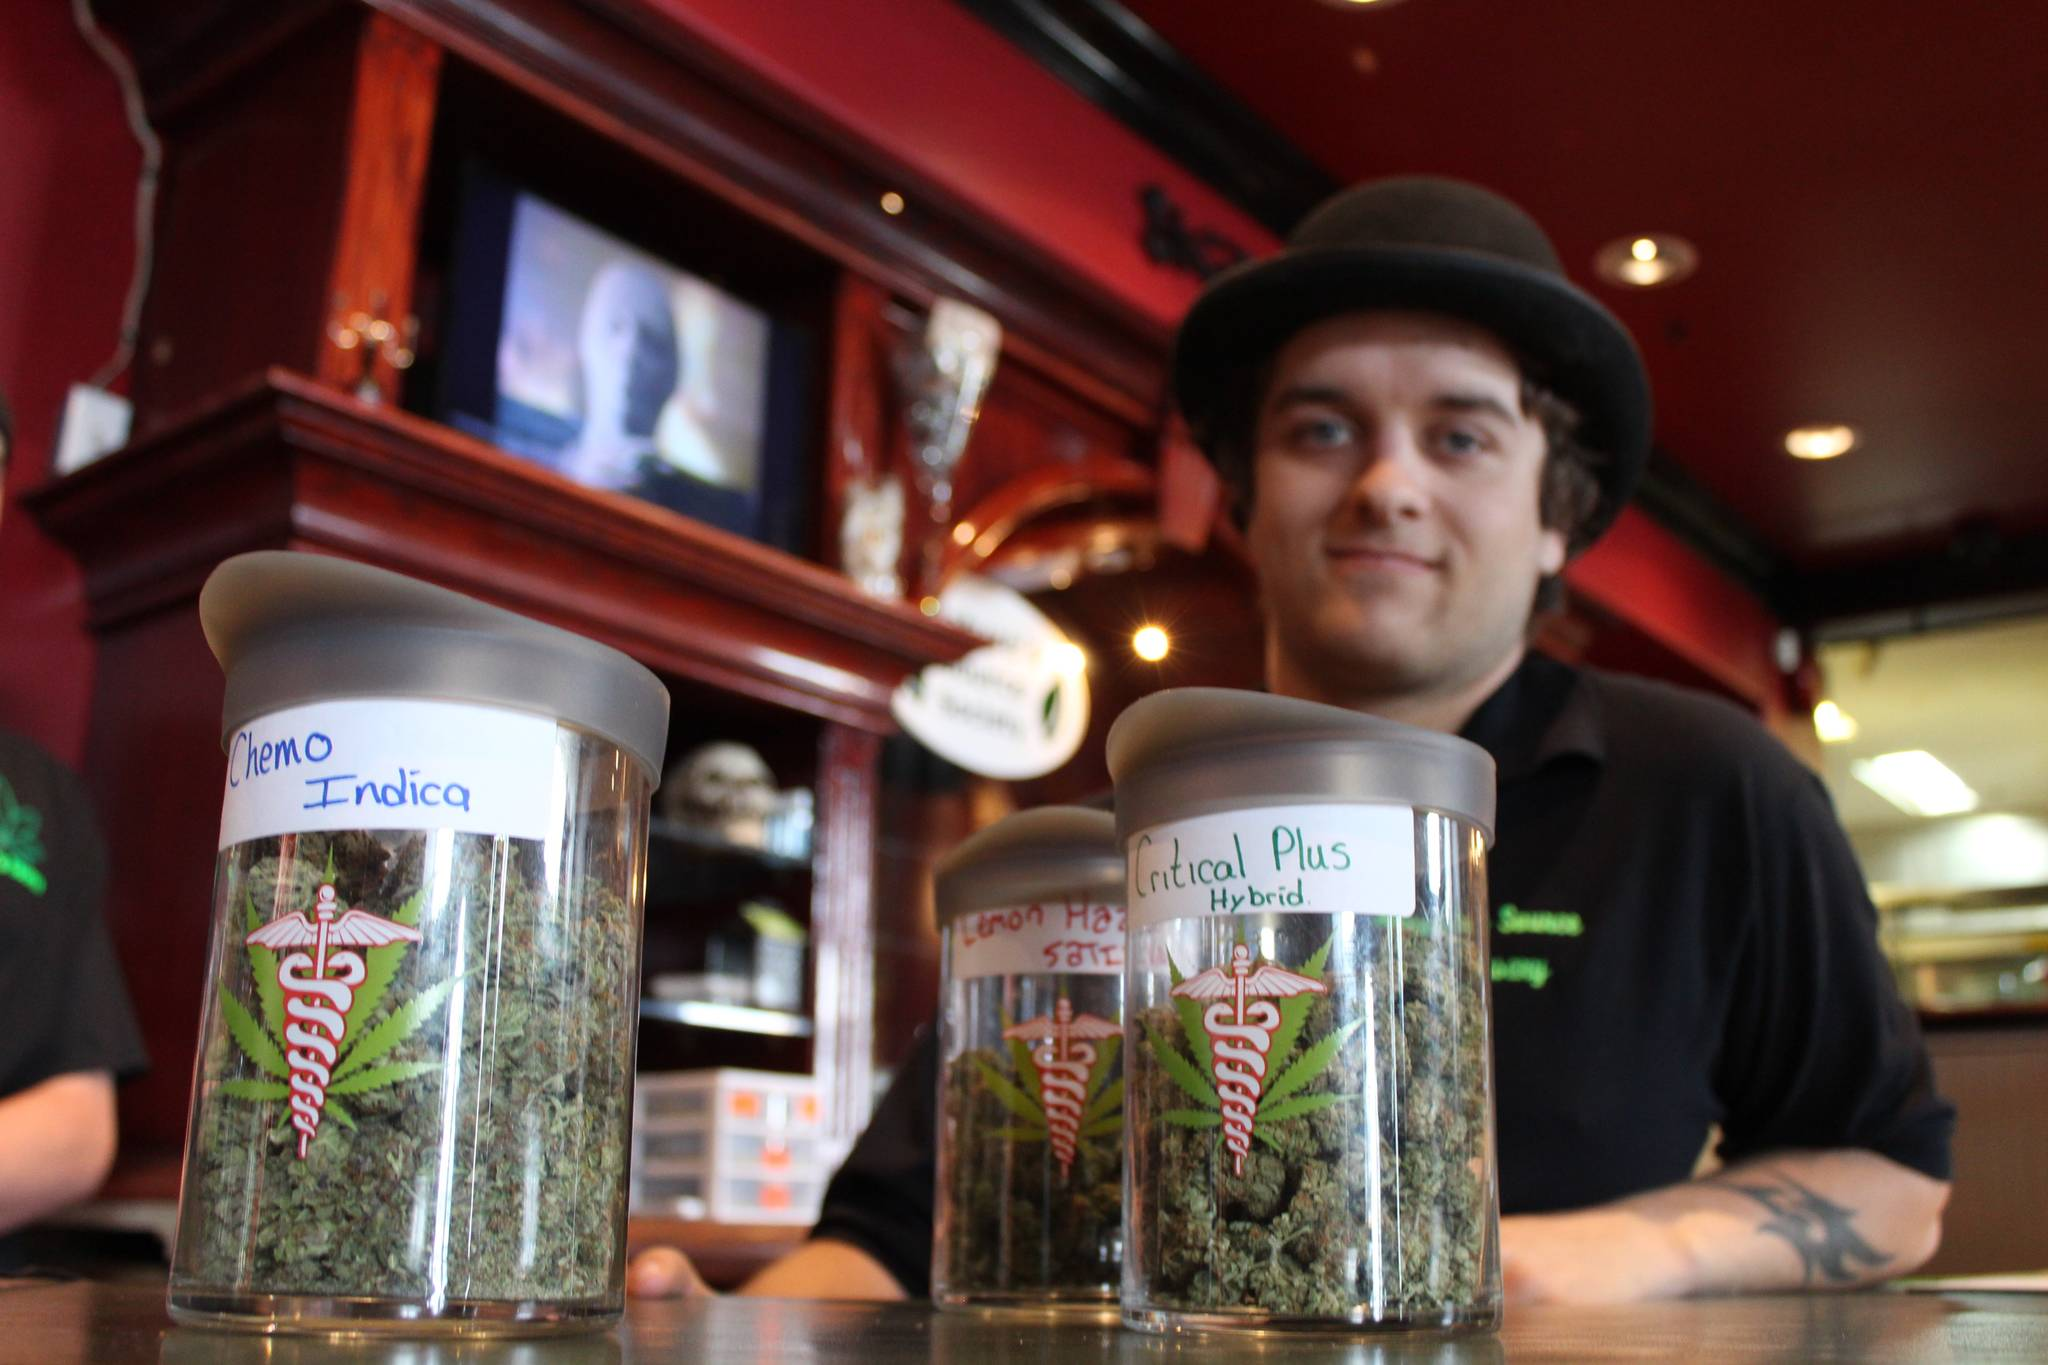 """The Globe in Nanaimo has been a """"cannabis friendly"""" establishment since 2015 when it opened as an illicit dispensary and compassion club. (John McKinley file photo)"""